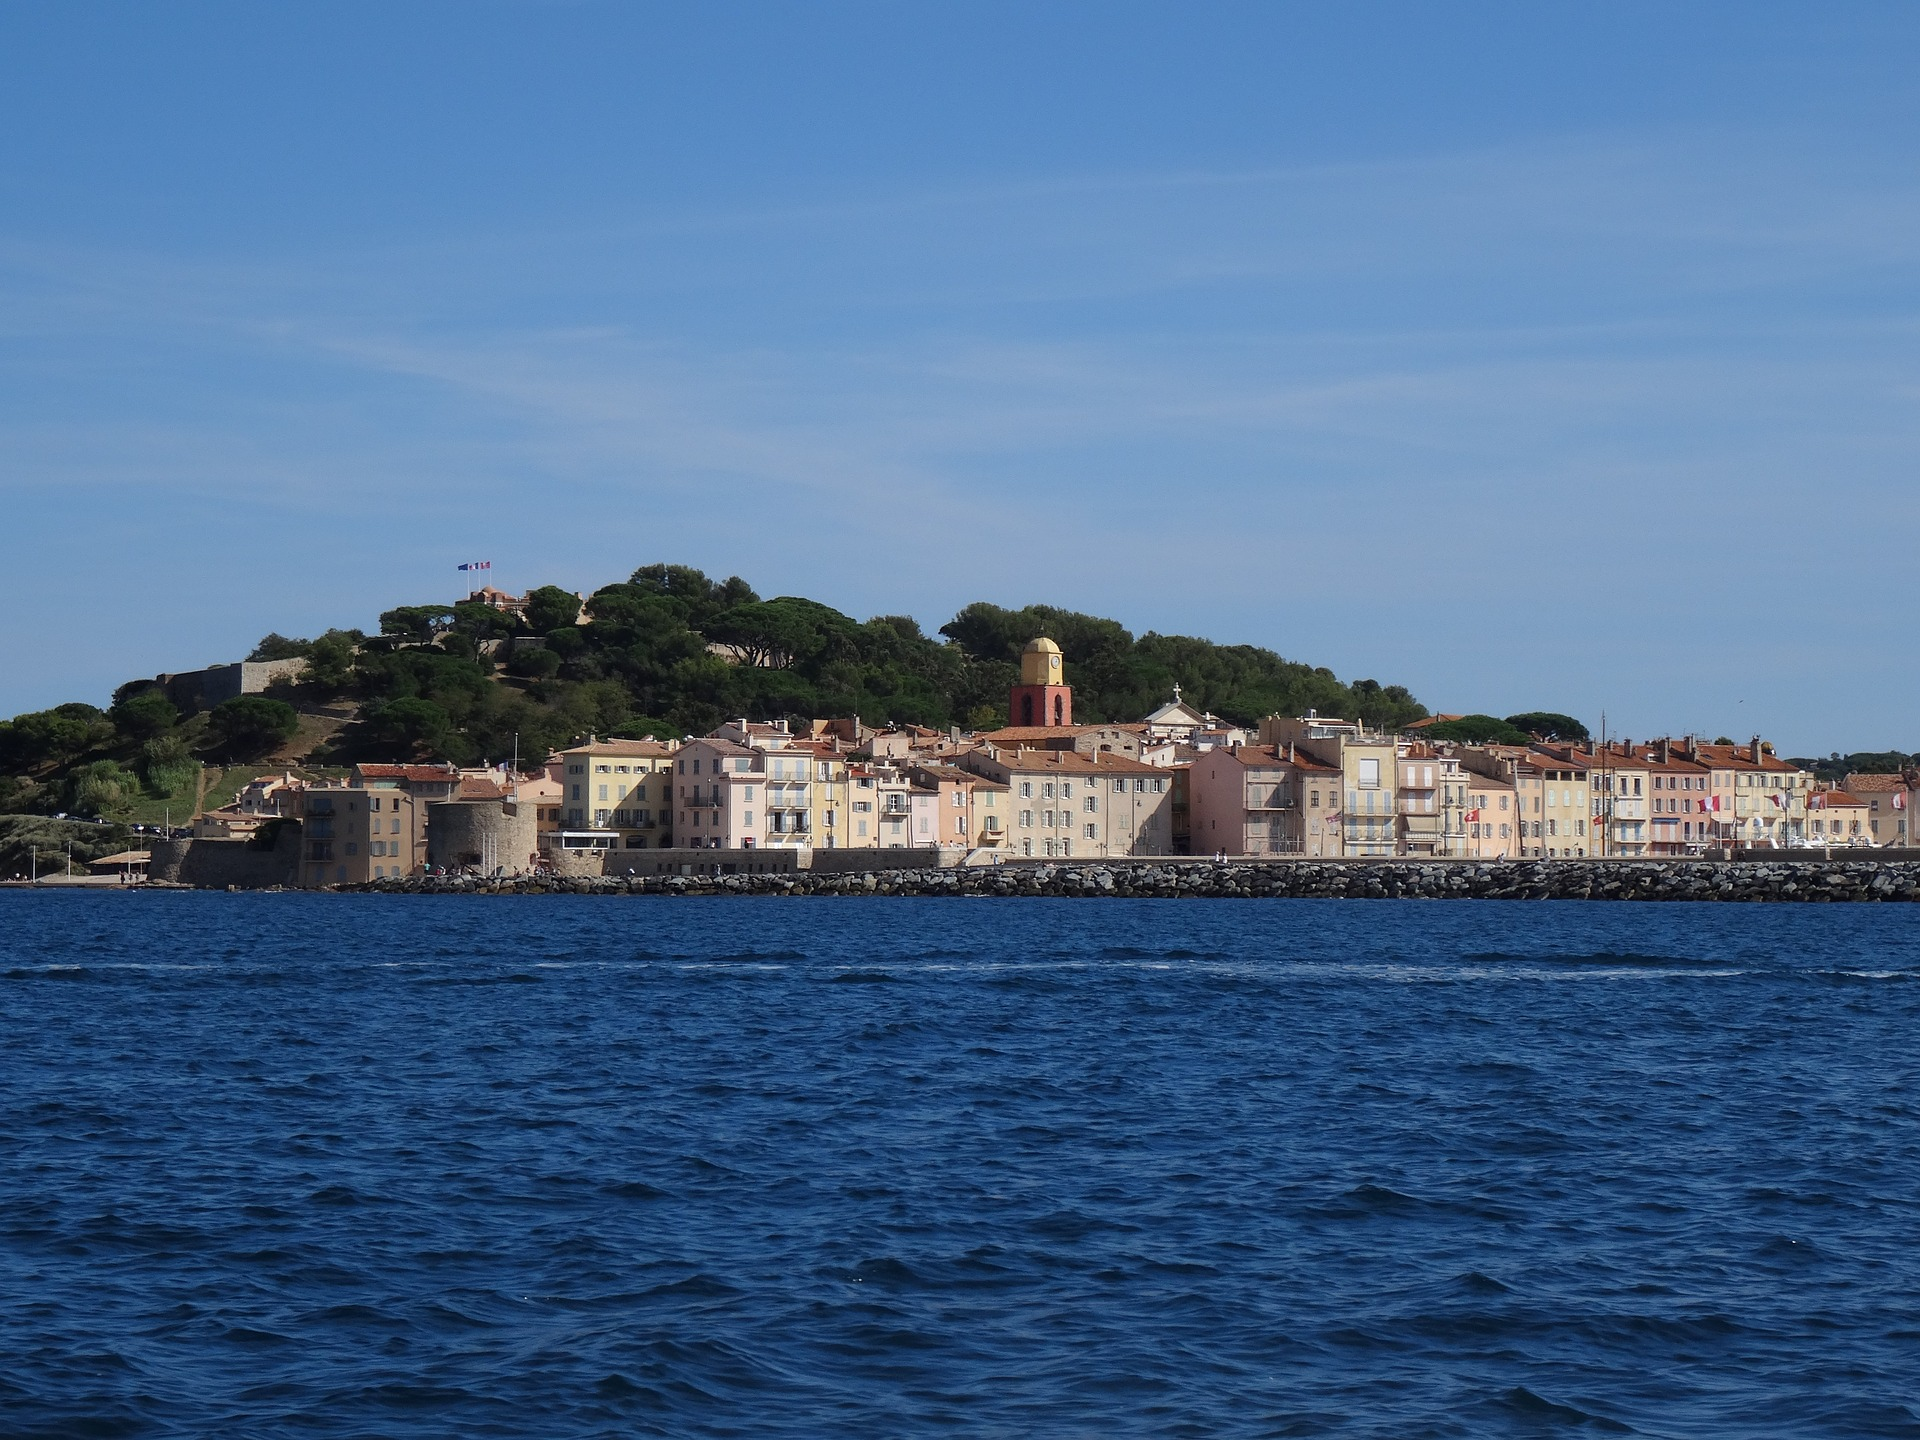 Facts about Saint-Tropez